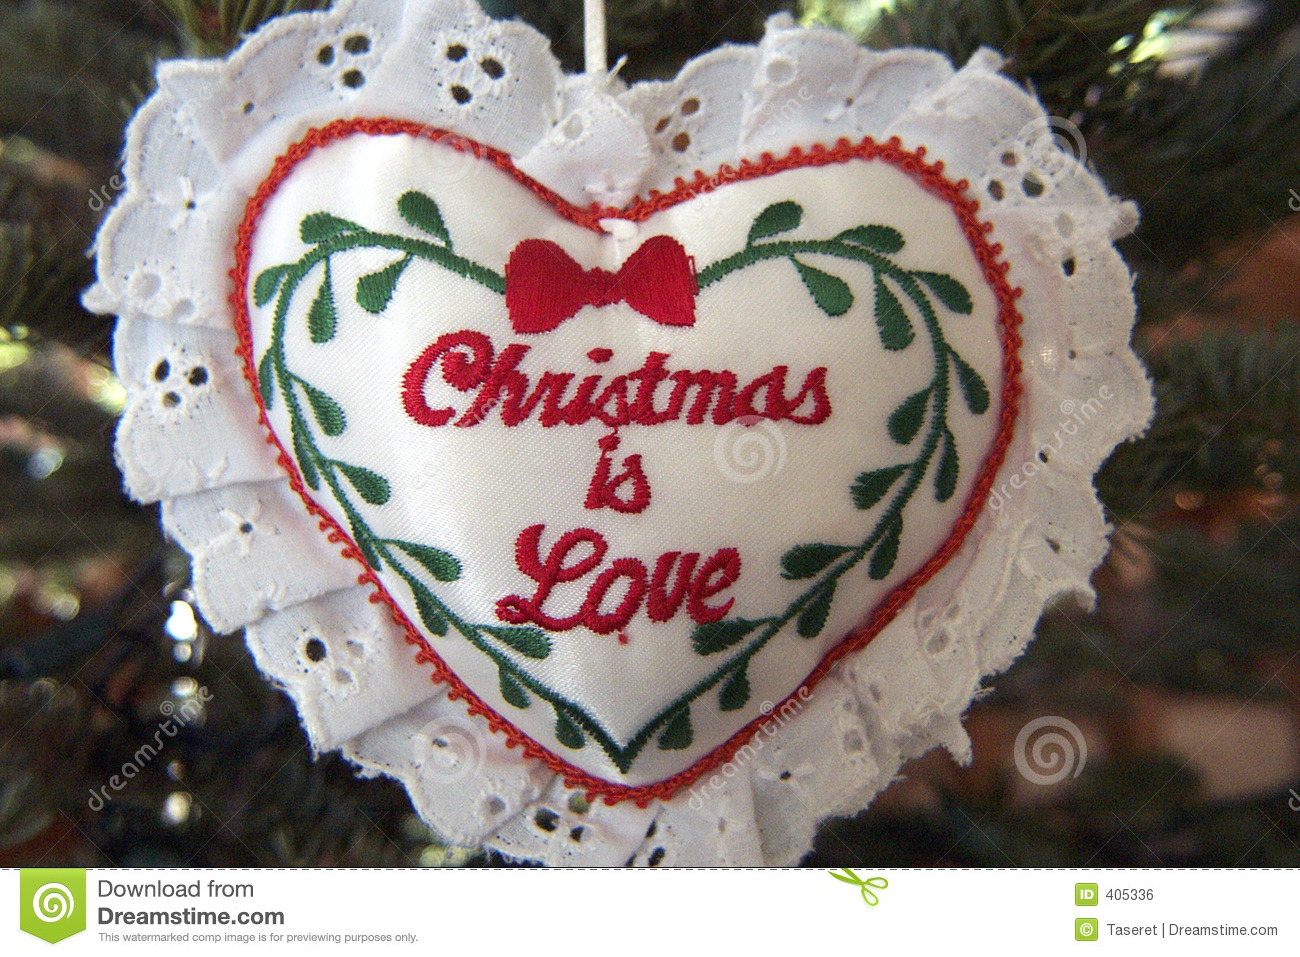 Christmas is Love stock photo. Image of ornament, heart - 405336